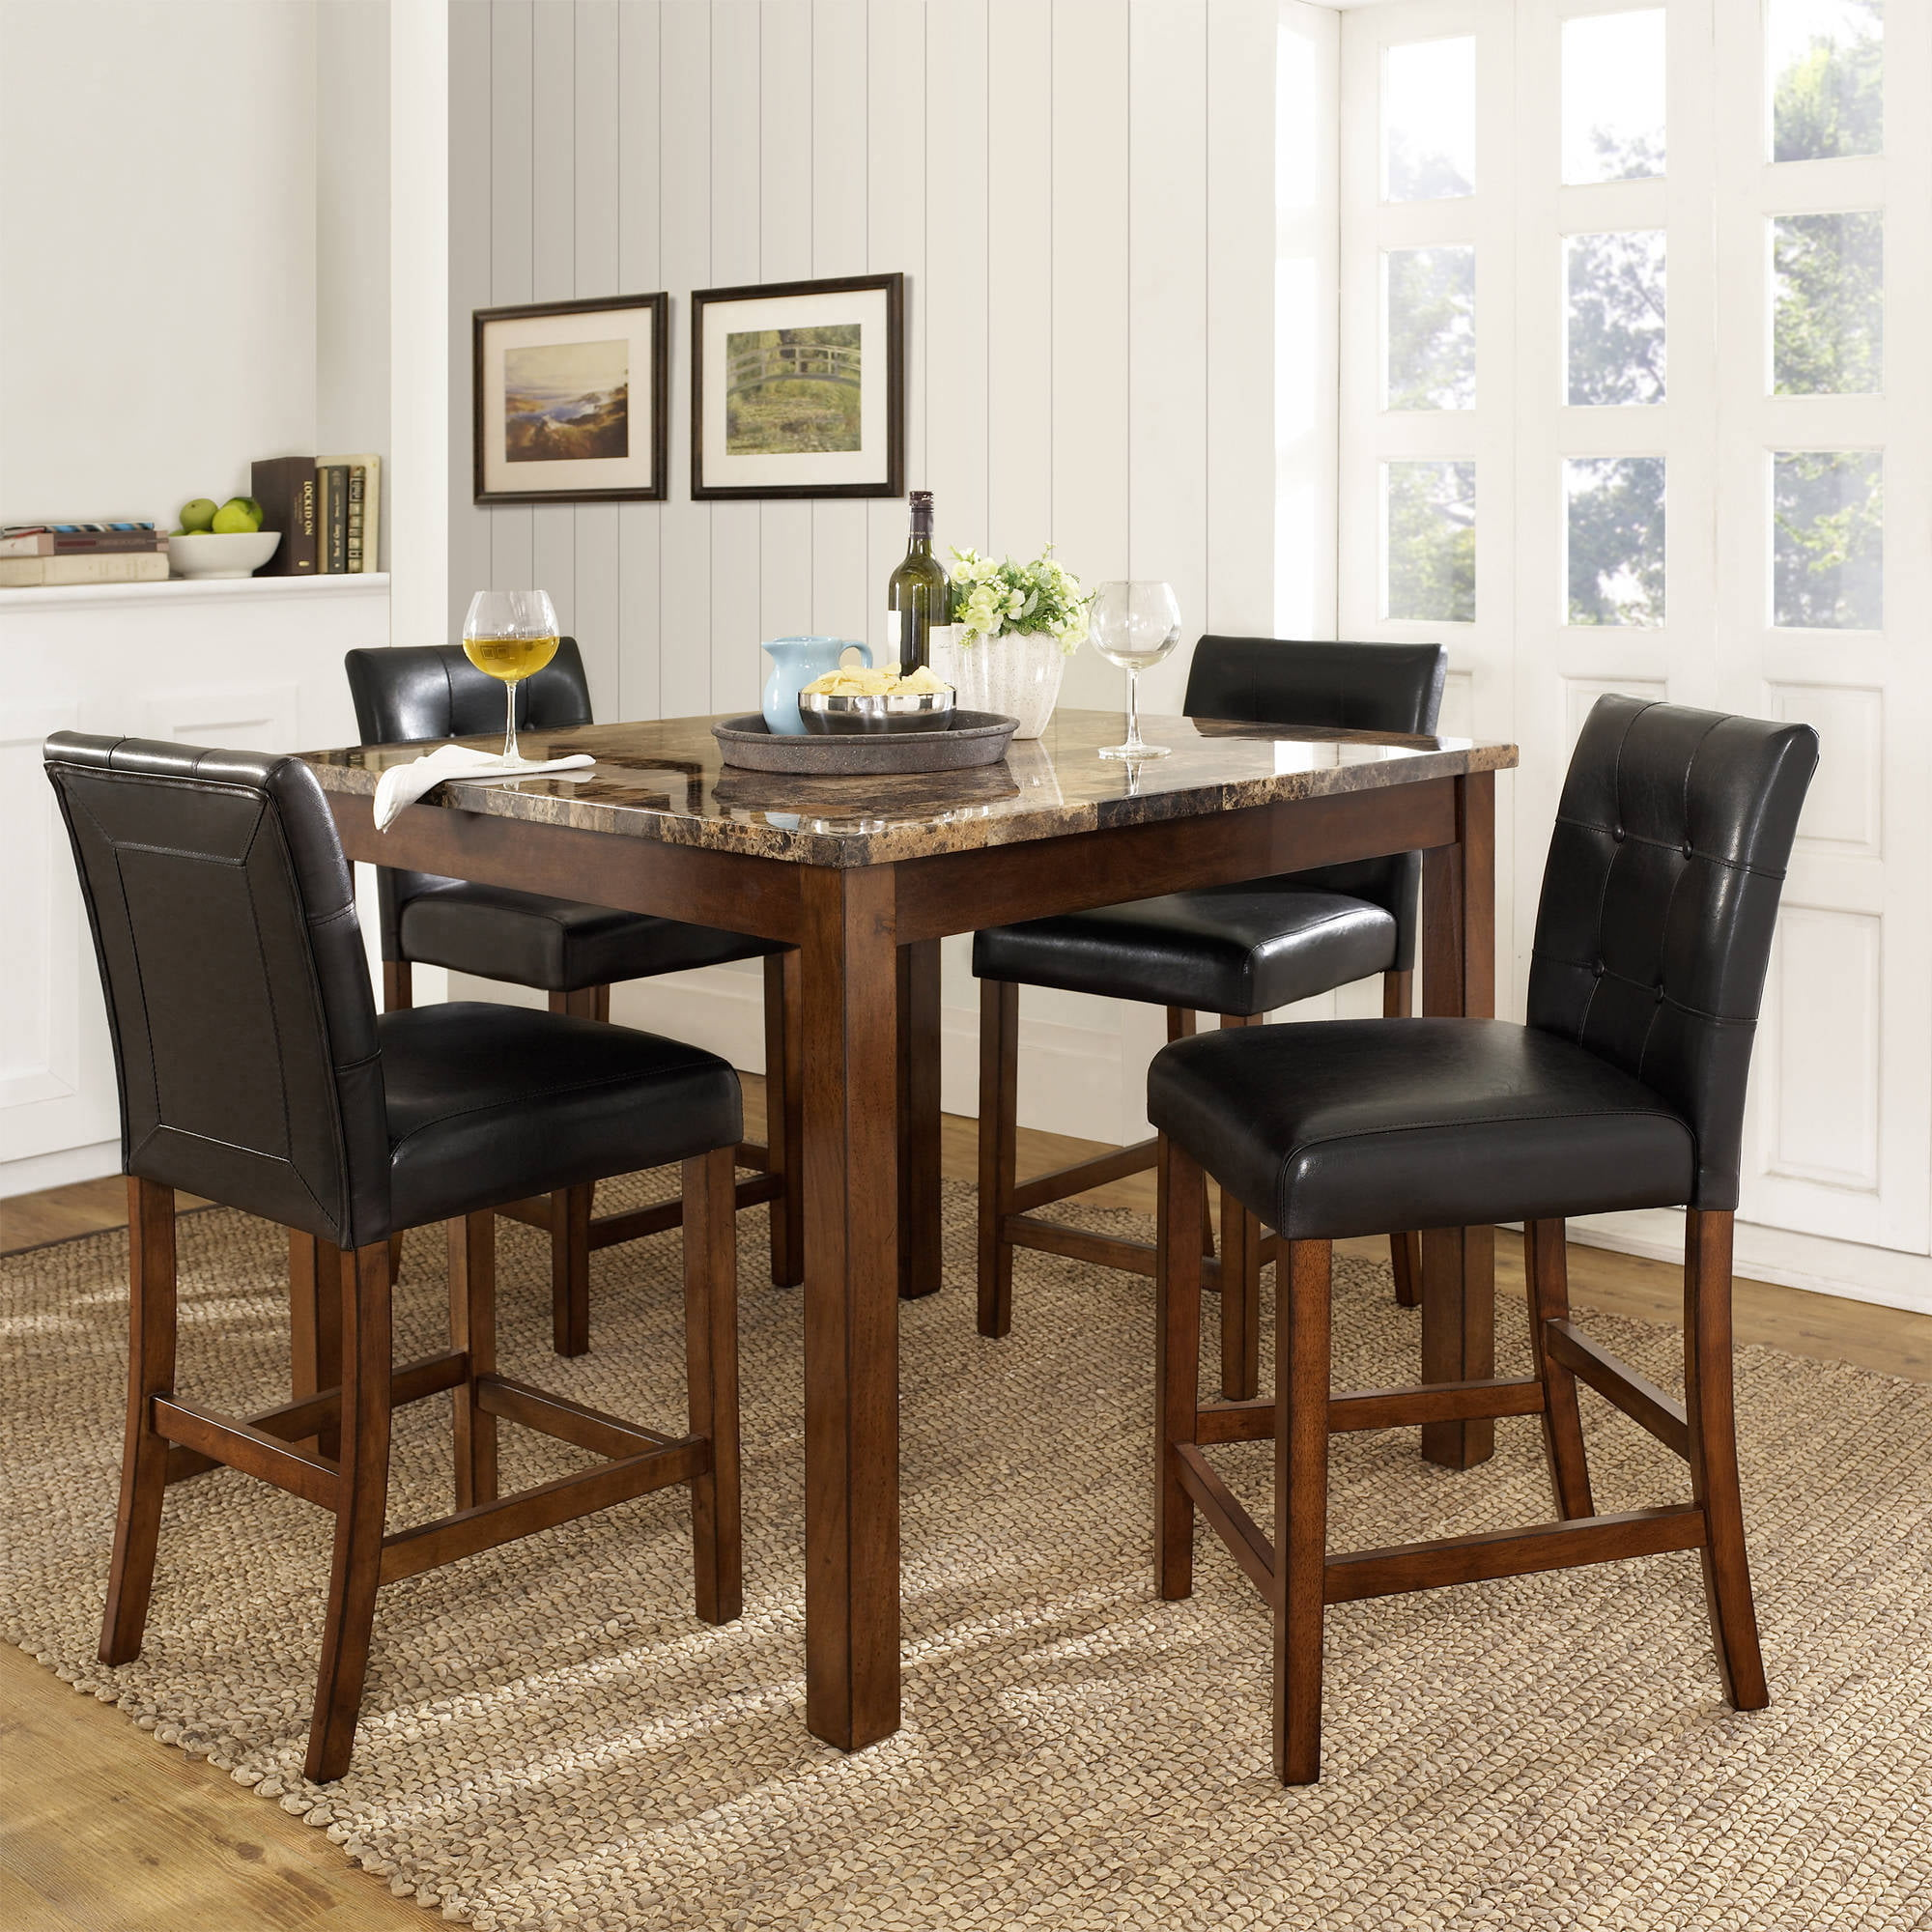 Simple dining table and chairs - Simple Dining Table And Chairs 12